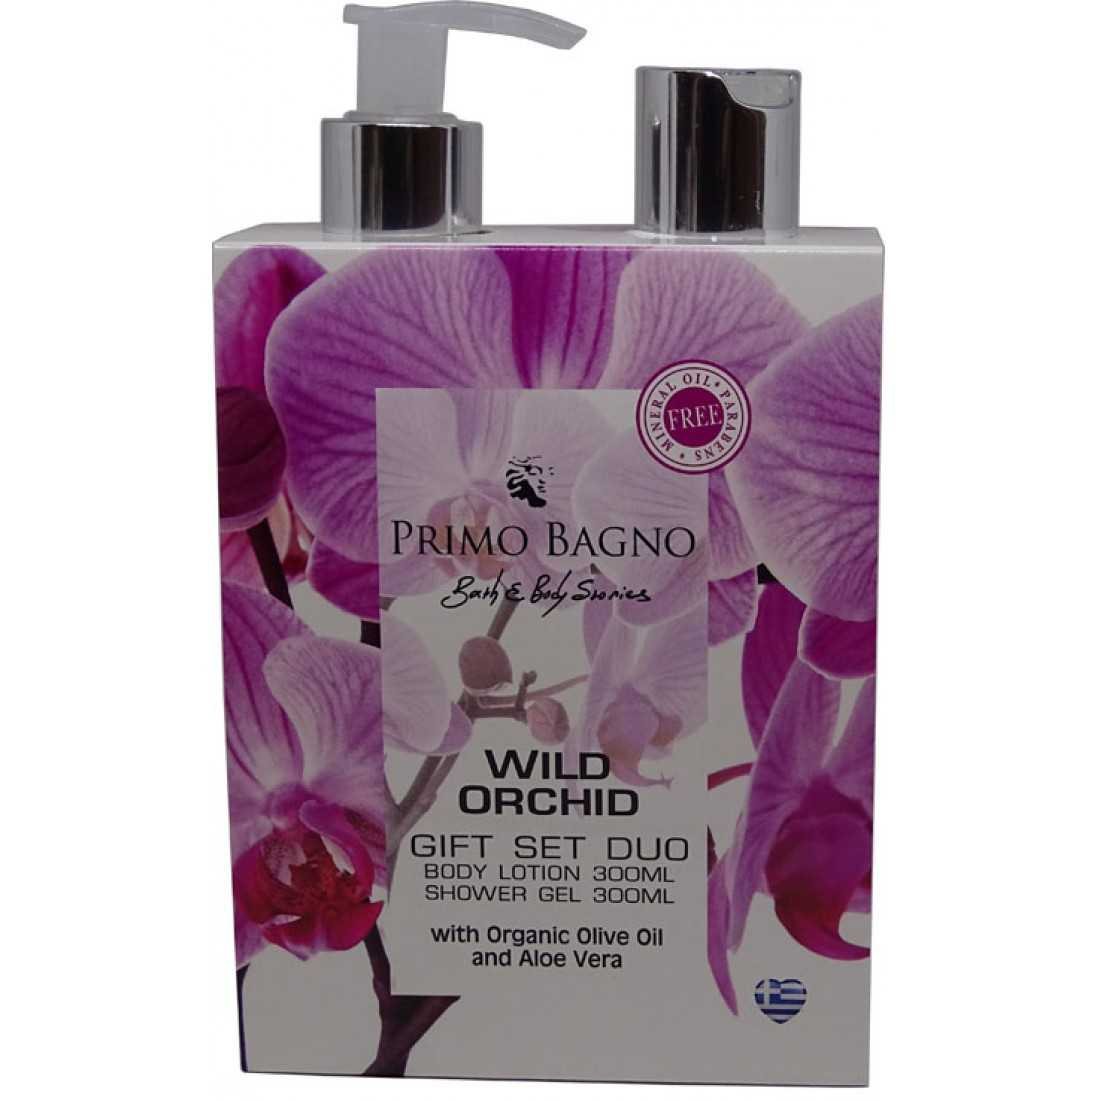 Primo Bagno - Gift Set Duo Wild Orchid